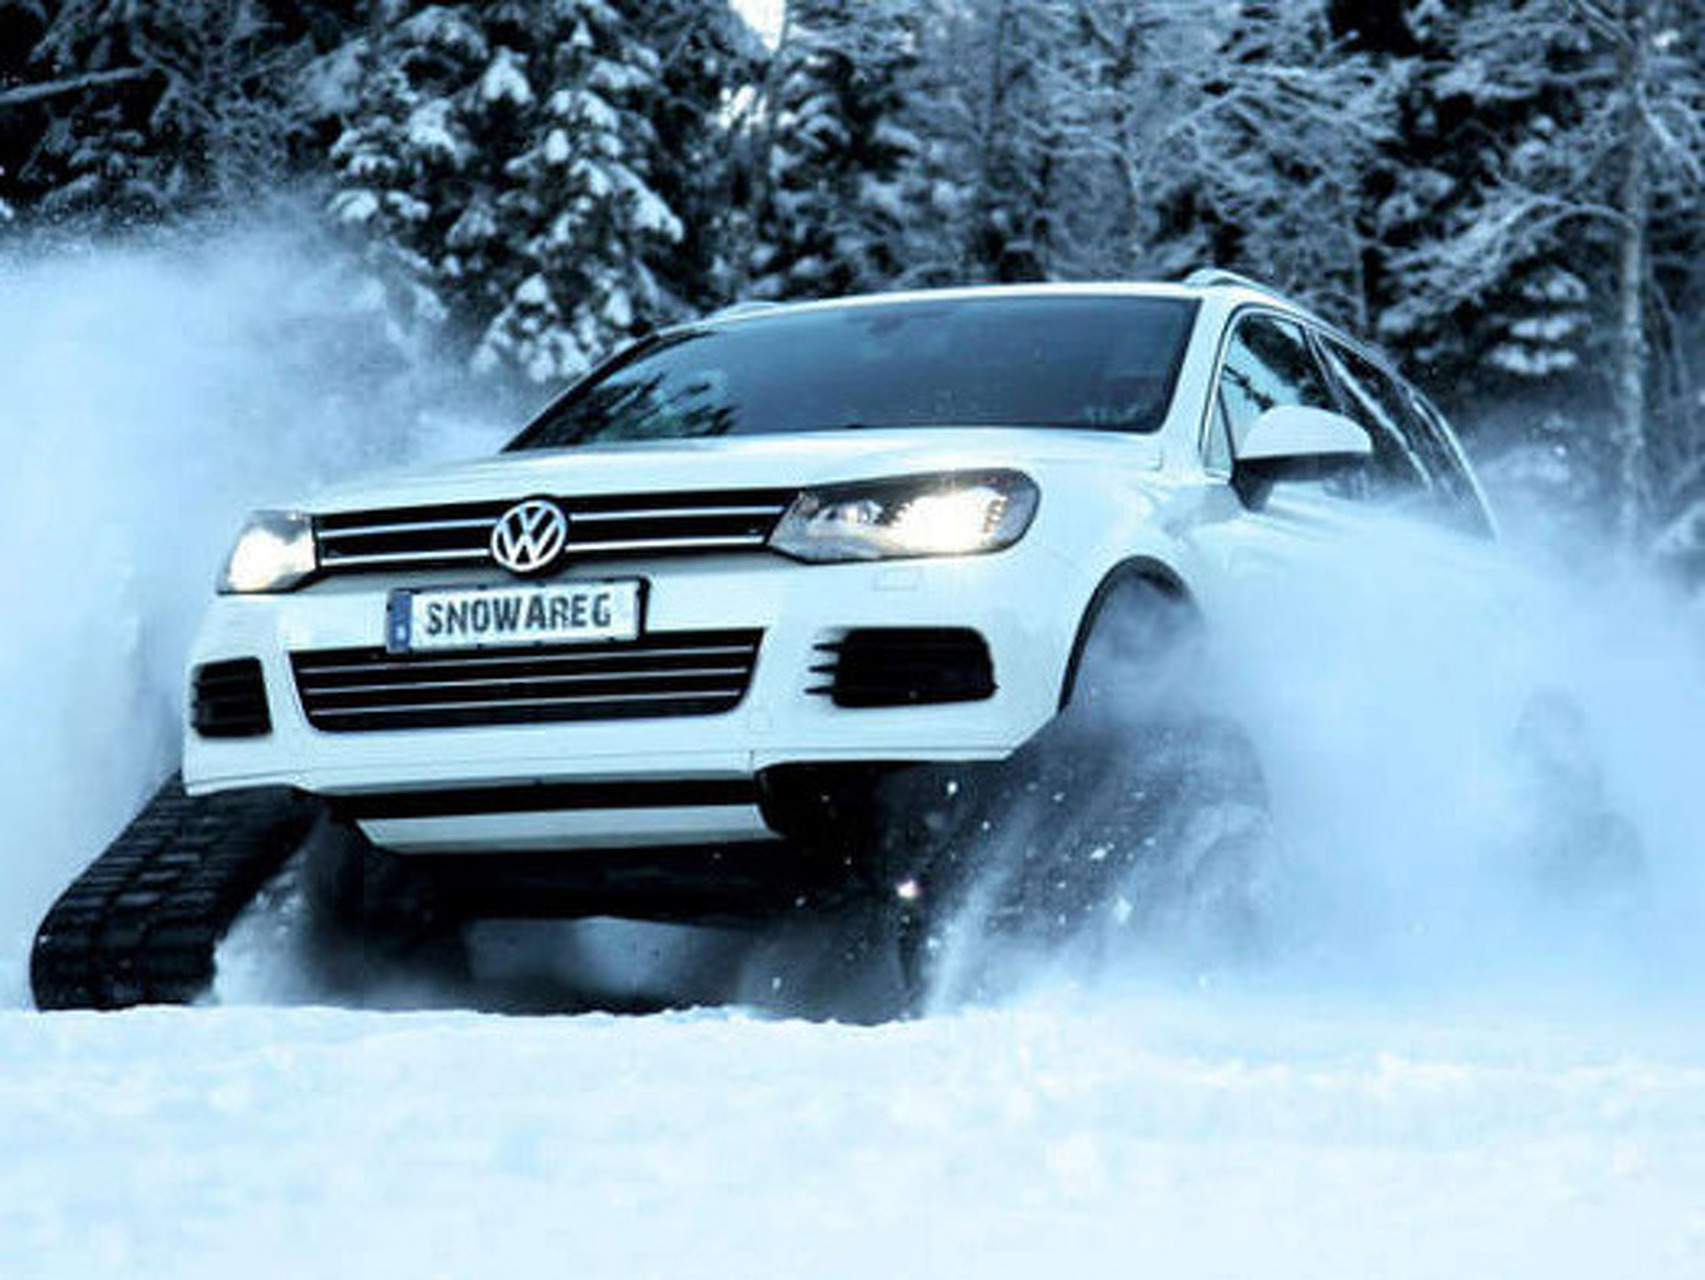 Volkswagen Snowareg: Sweden's Wild New Snow Machine